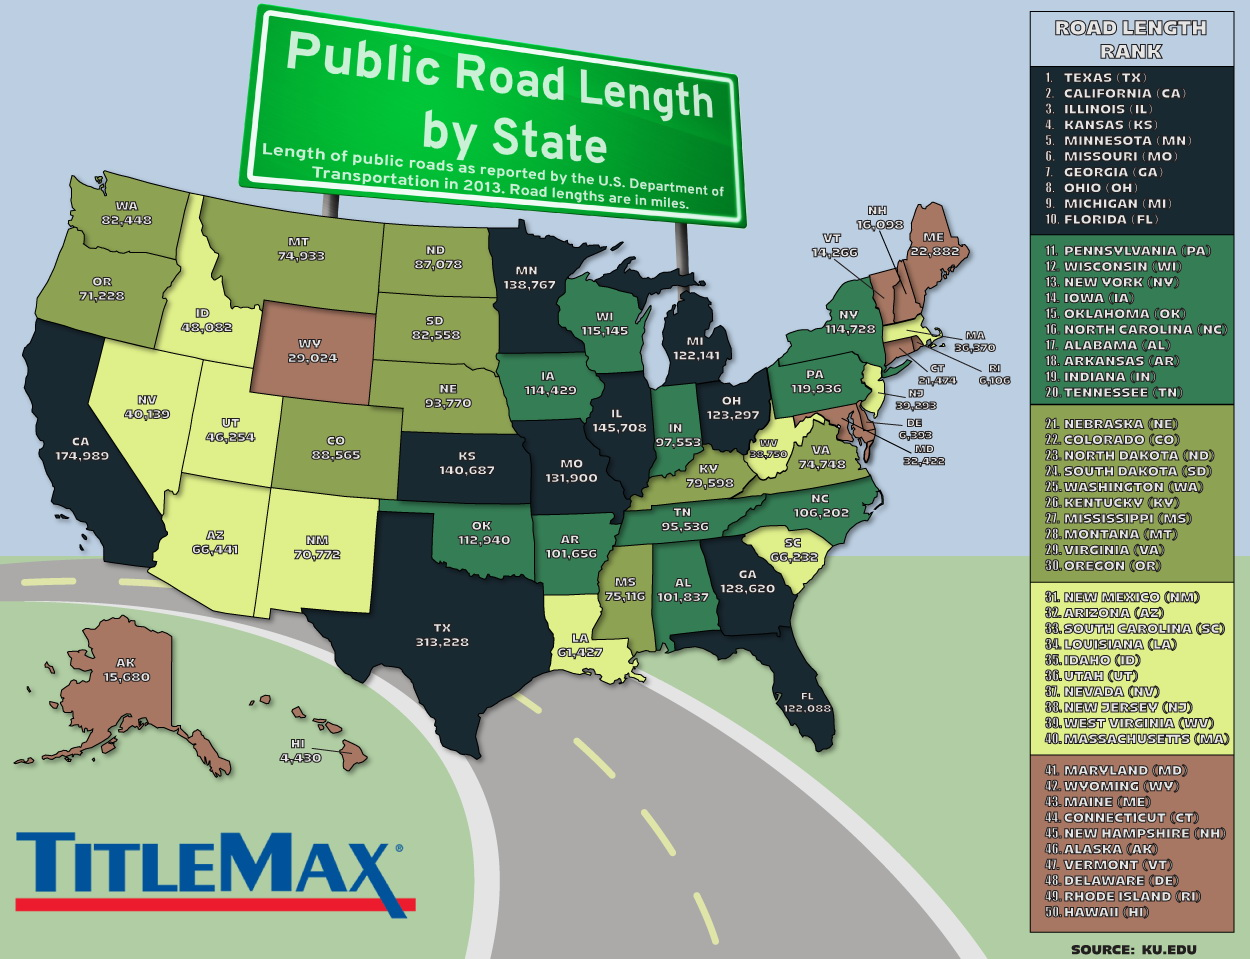 Public road length totals for each state in the U.S.